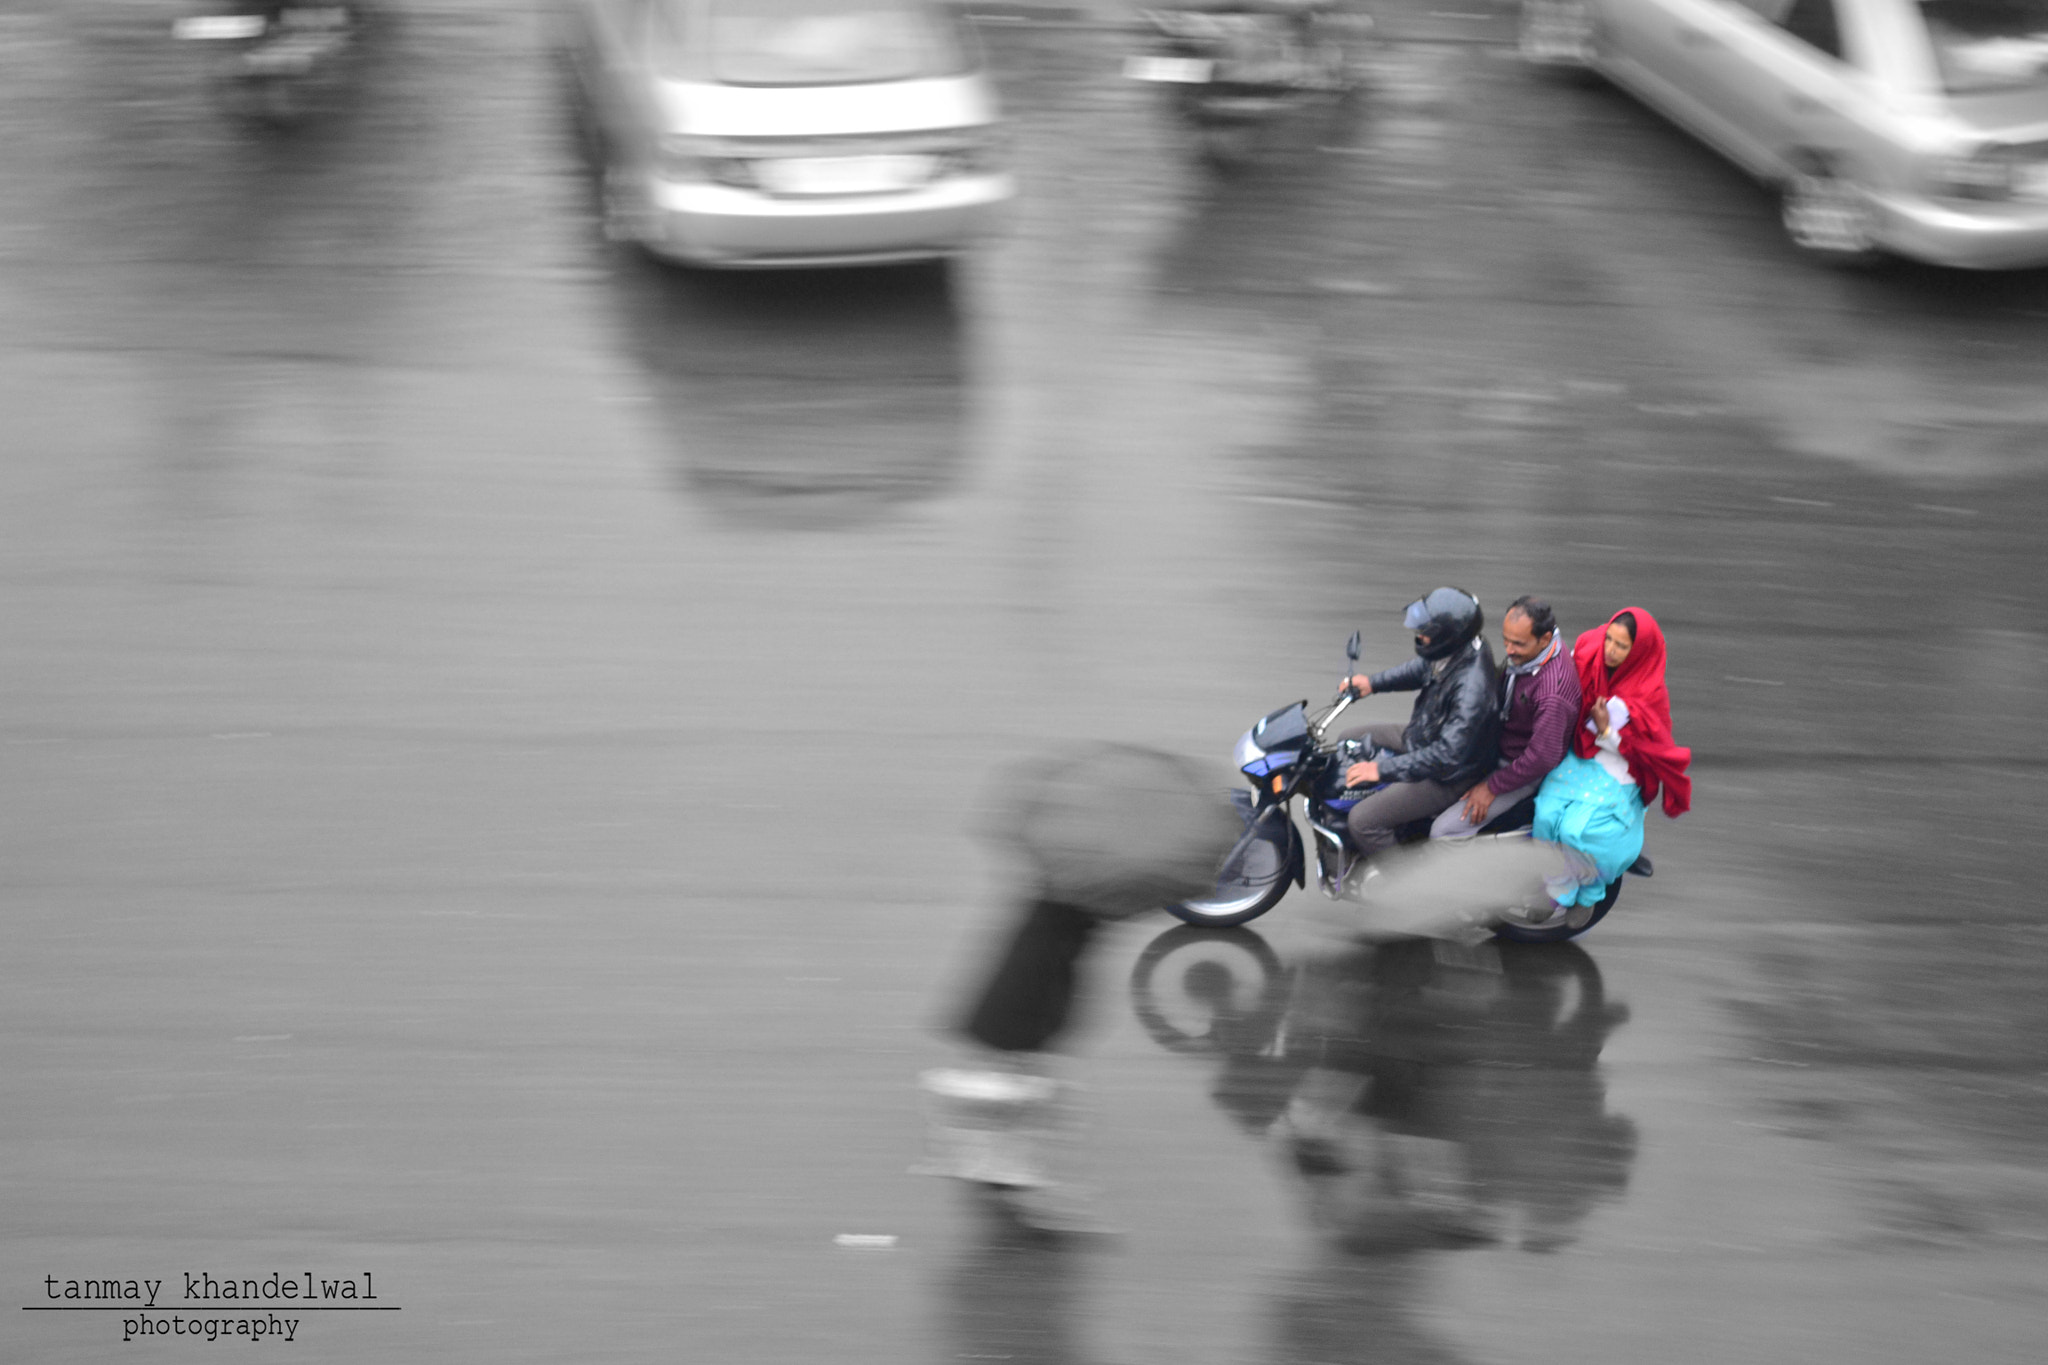 Photograph Life by Tanmay Khandelwal on 500px